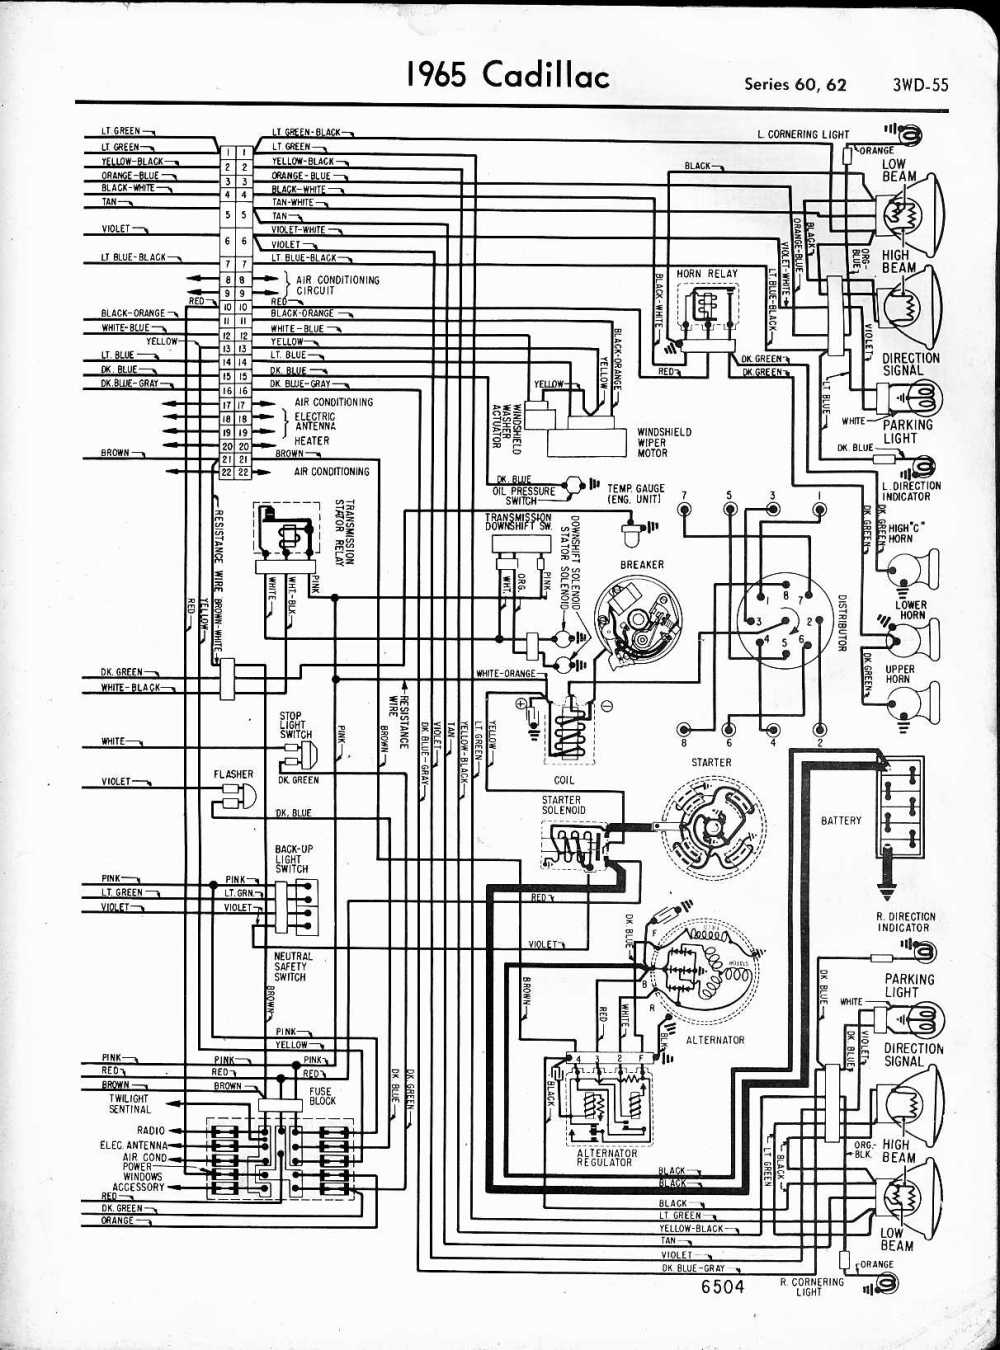 medium resolution of 1968 cadillac deville wiring diagram wiring diagram todayscadillac wiring schematics wiring diagram todays 1968 cadillac deville